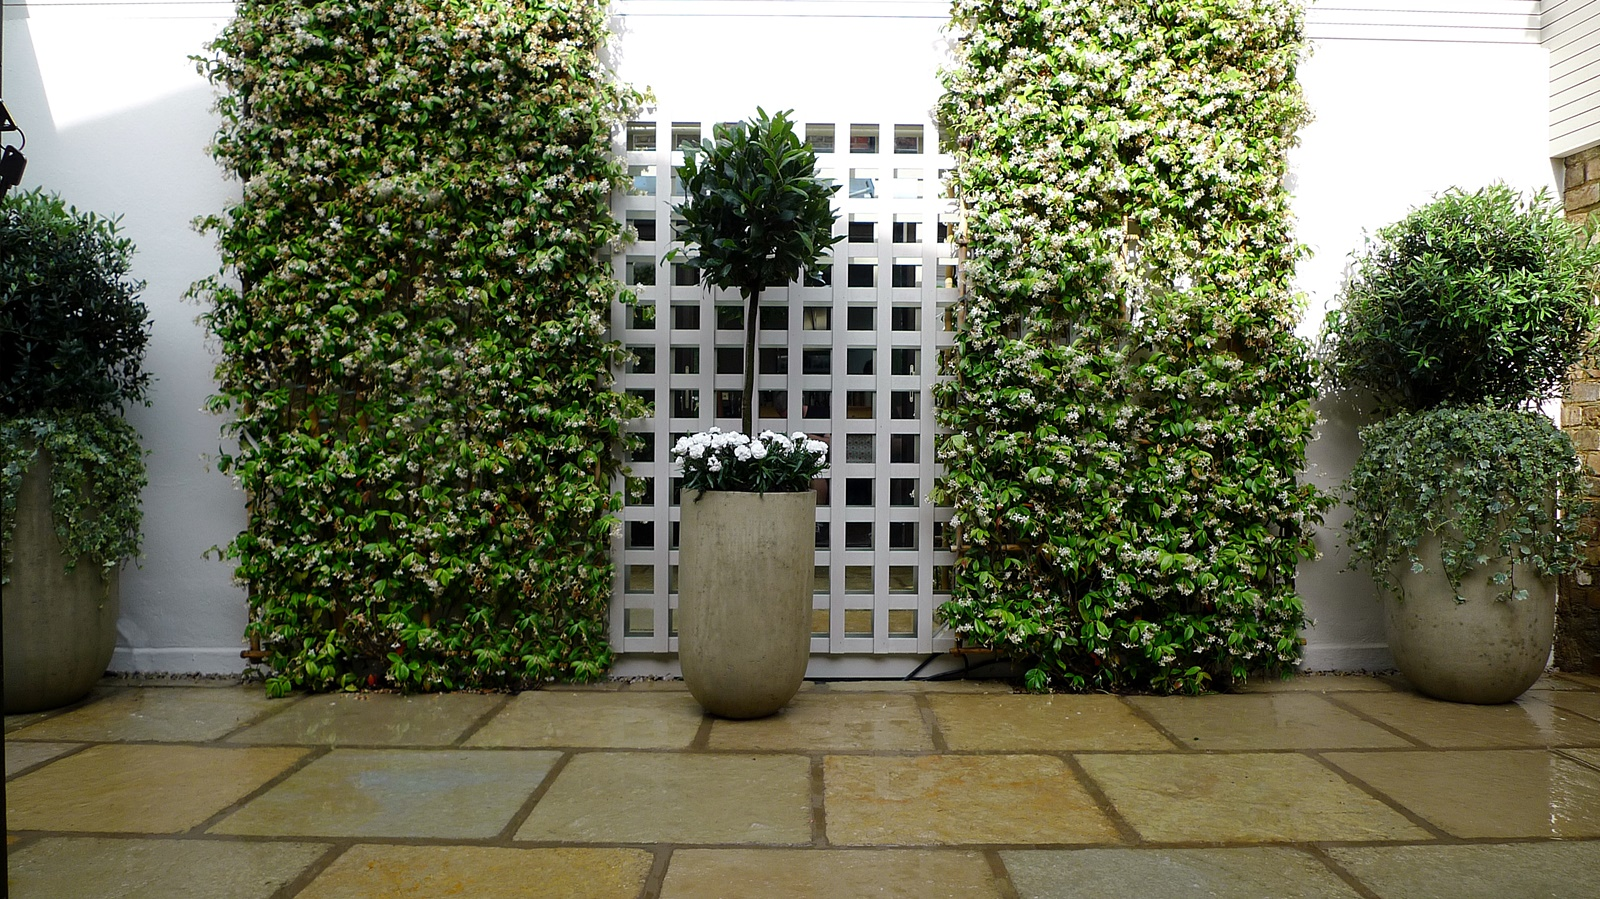 Courtyard minimalist contemporary garden design and designer london (18)